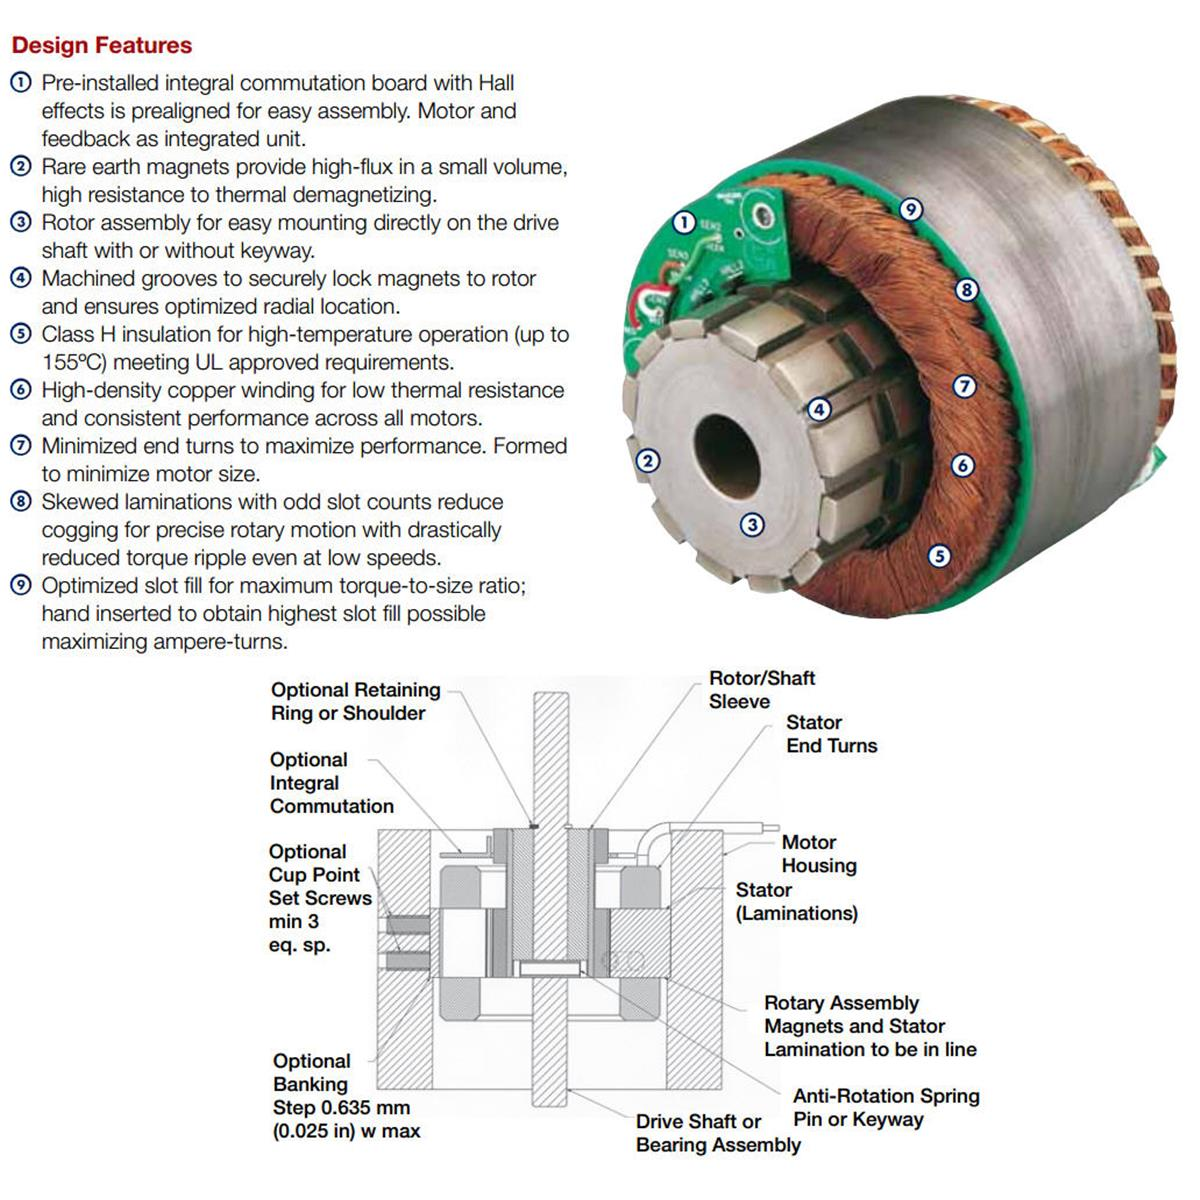 Comoso Product K Series Frameless Motor Kits Parker Electromechanical Automation Faq Site Servo Motors Kit Save Space In Applications Because The Couplings Mounting Brackets And Extra Bearings You Would Find Coupled Drive Construction Are